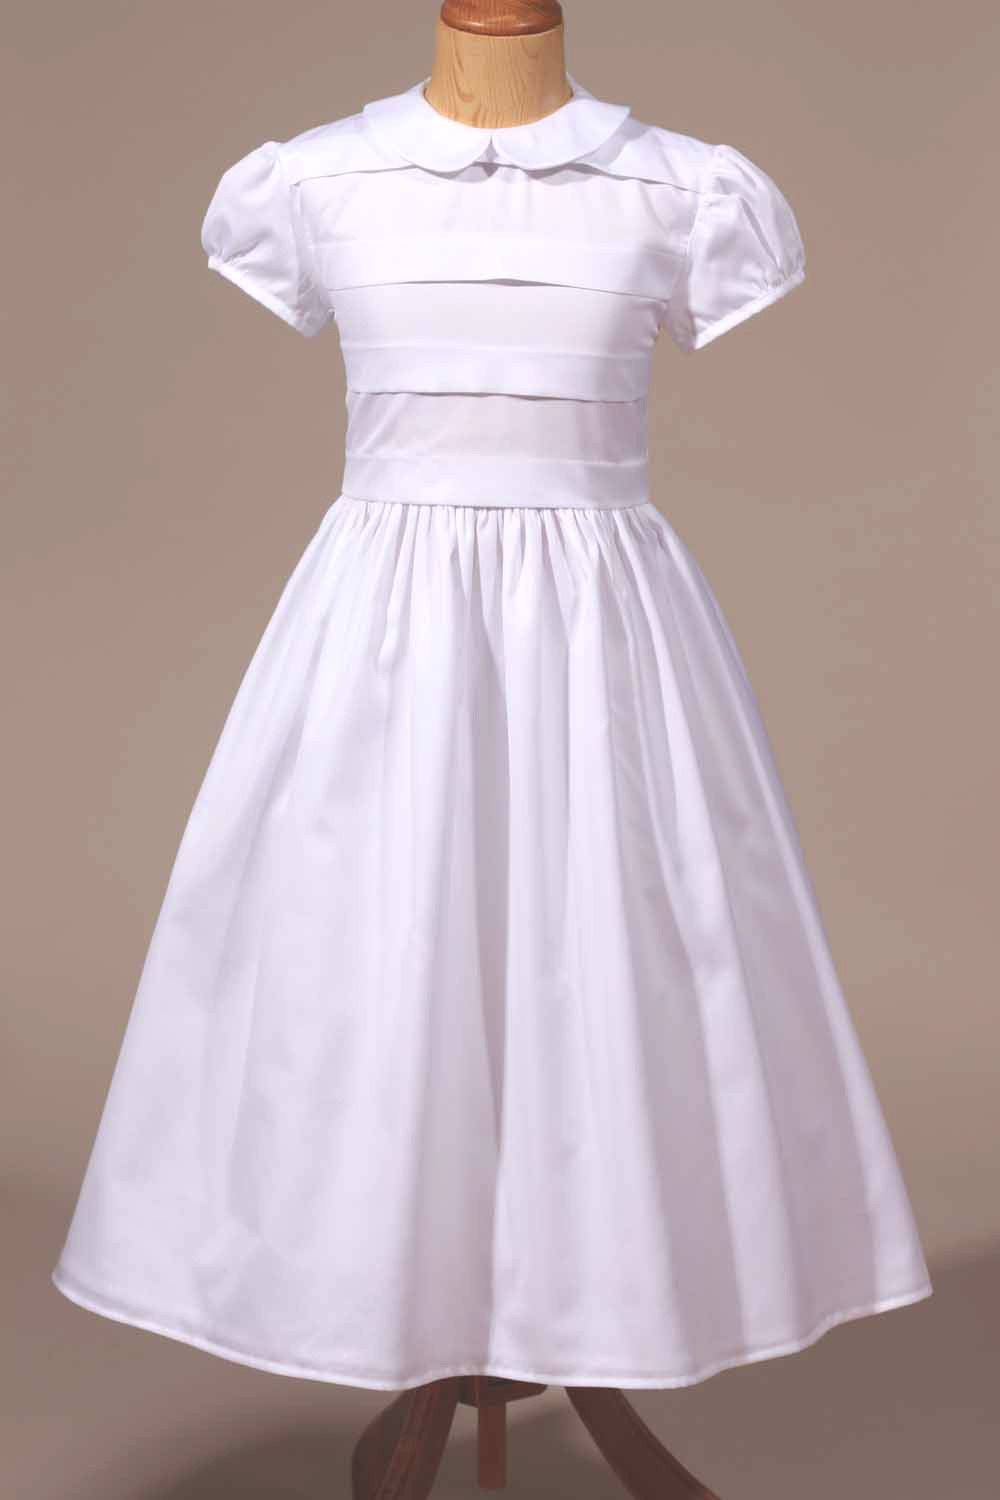 Nancy Paris Pas Cher Robe De Communion Fille Sur Mesure